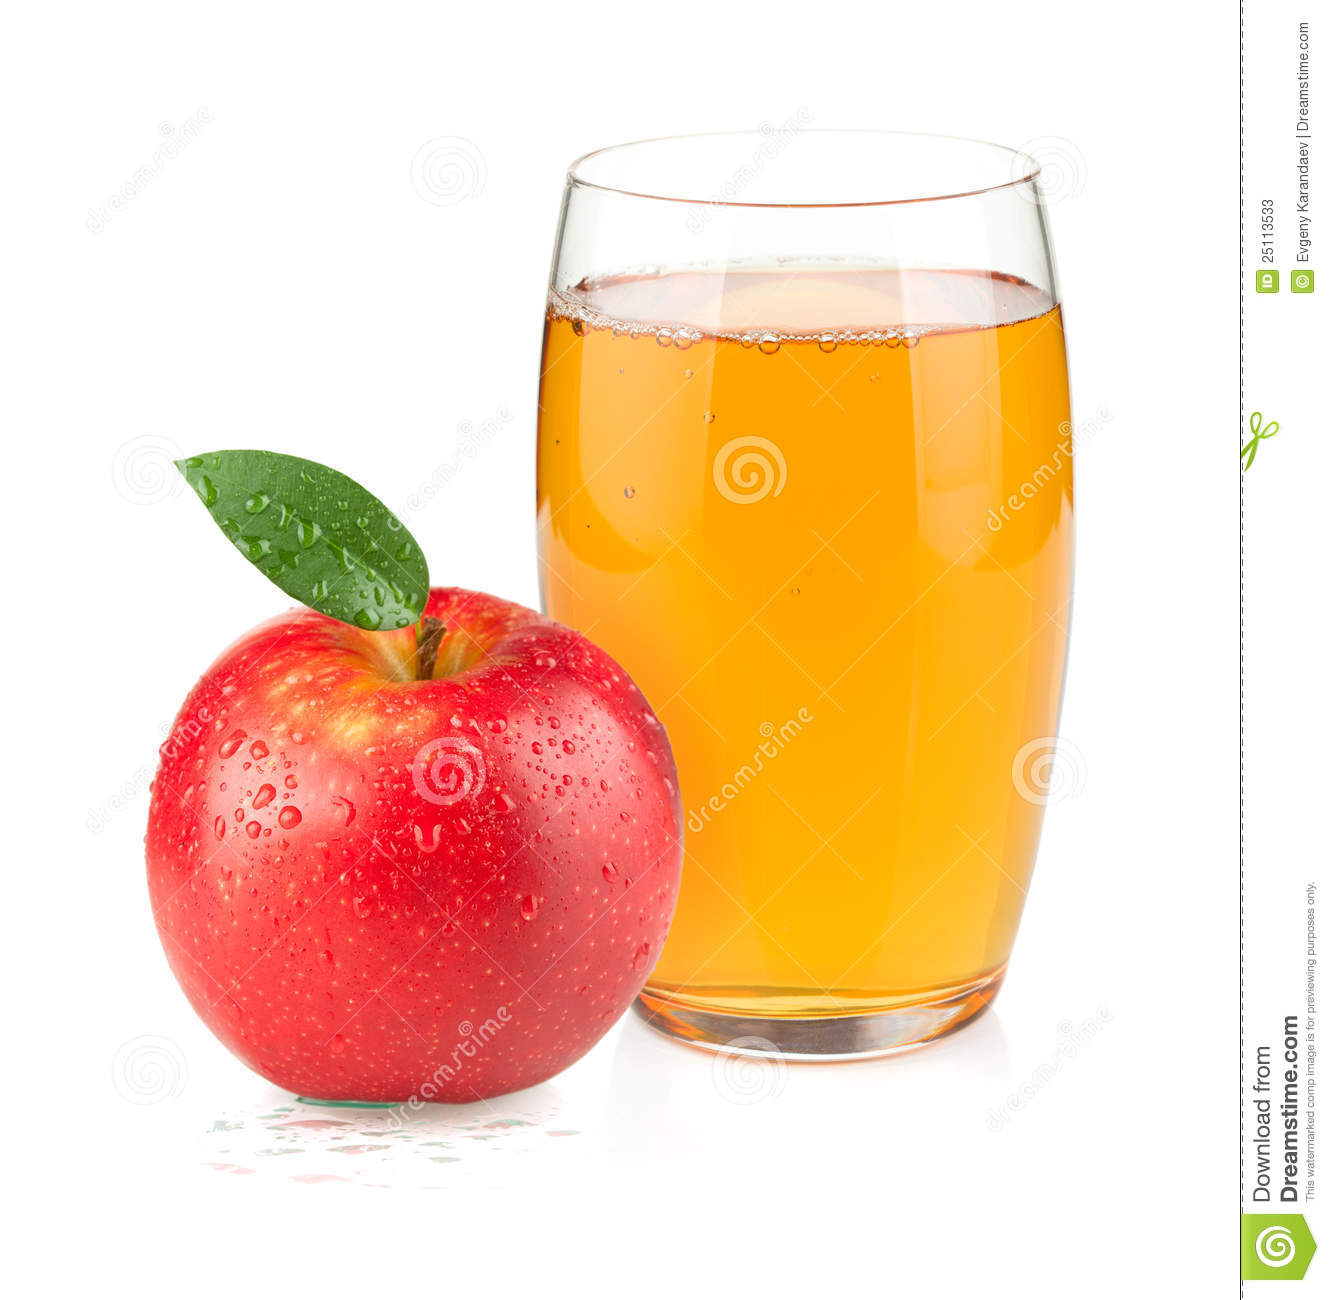 Apple juice in a glass and red apple stock photos image 25113533 - Toile de verre skinglass ...